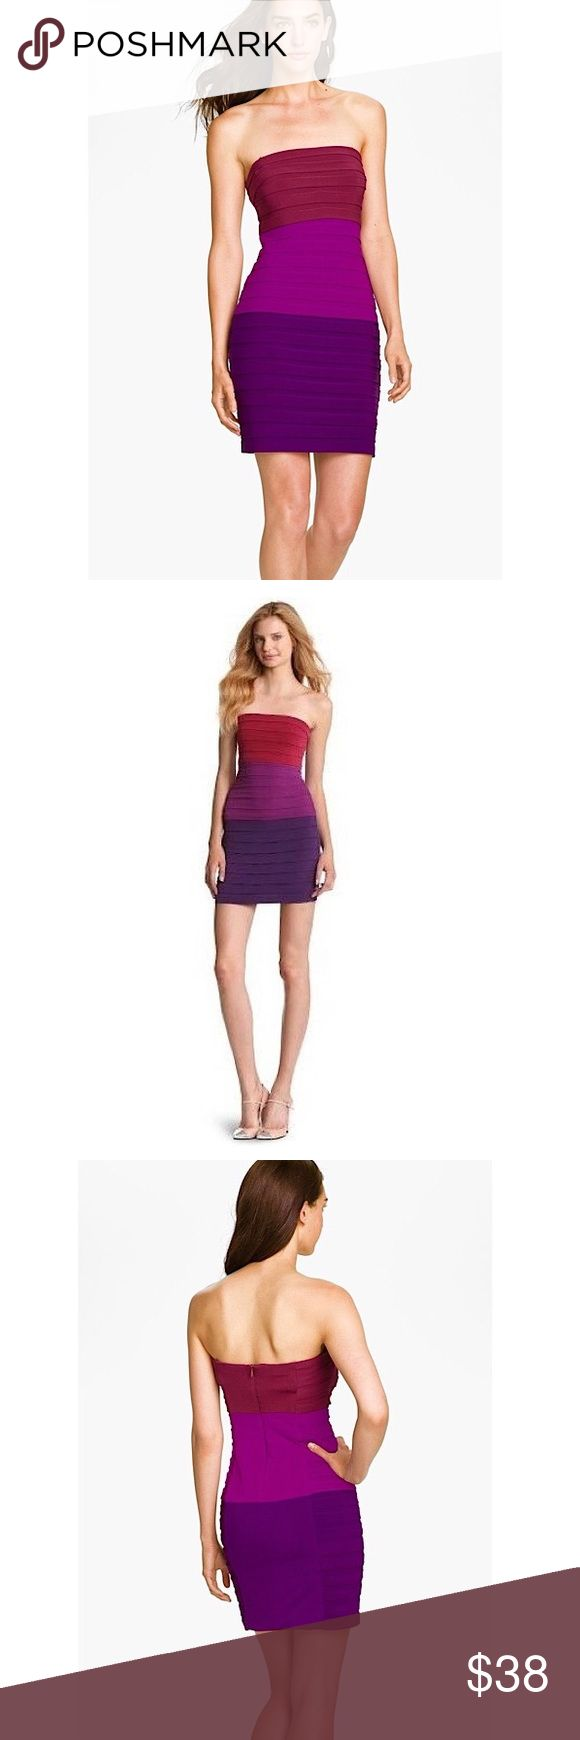 MAX AND CLEO Suzy bodycon banded strapless dress MAX AND CLEO Suzy bodycon banded strapless dress in color blocks of purple/burgundy.  Hidden back zip closure Fully lined Polyester/spandex Machine wash (dry clean recommended) Has supporting bones up the sides on the inside A fitted, sexy, feminine piece! Only worn once, like new, tiny snag under left armpit as shown in photo (smaller than my fingernail). Not visible at all. Max and Cleo Dresses Strapless